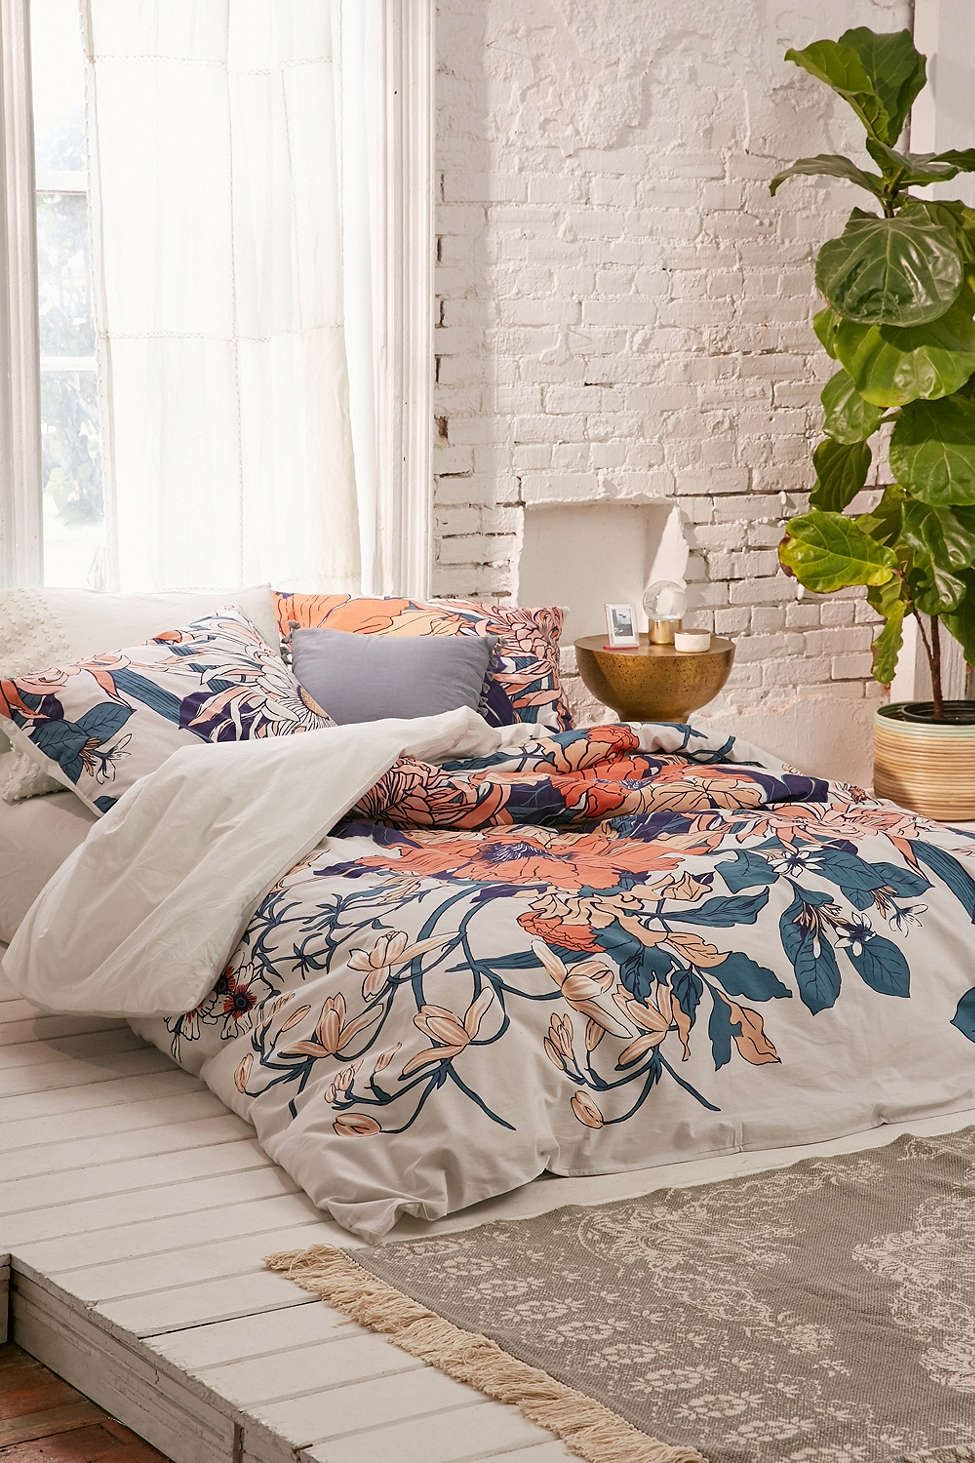 Where To Buy Nice Duvet Covers Botanical Scarf Duvet Cover Urban Outfitters Bedroom Bedroom